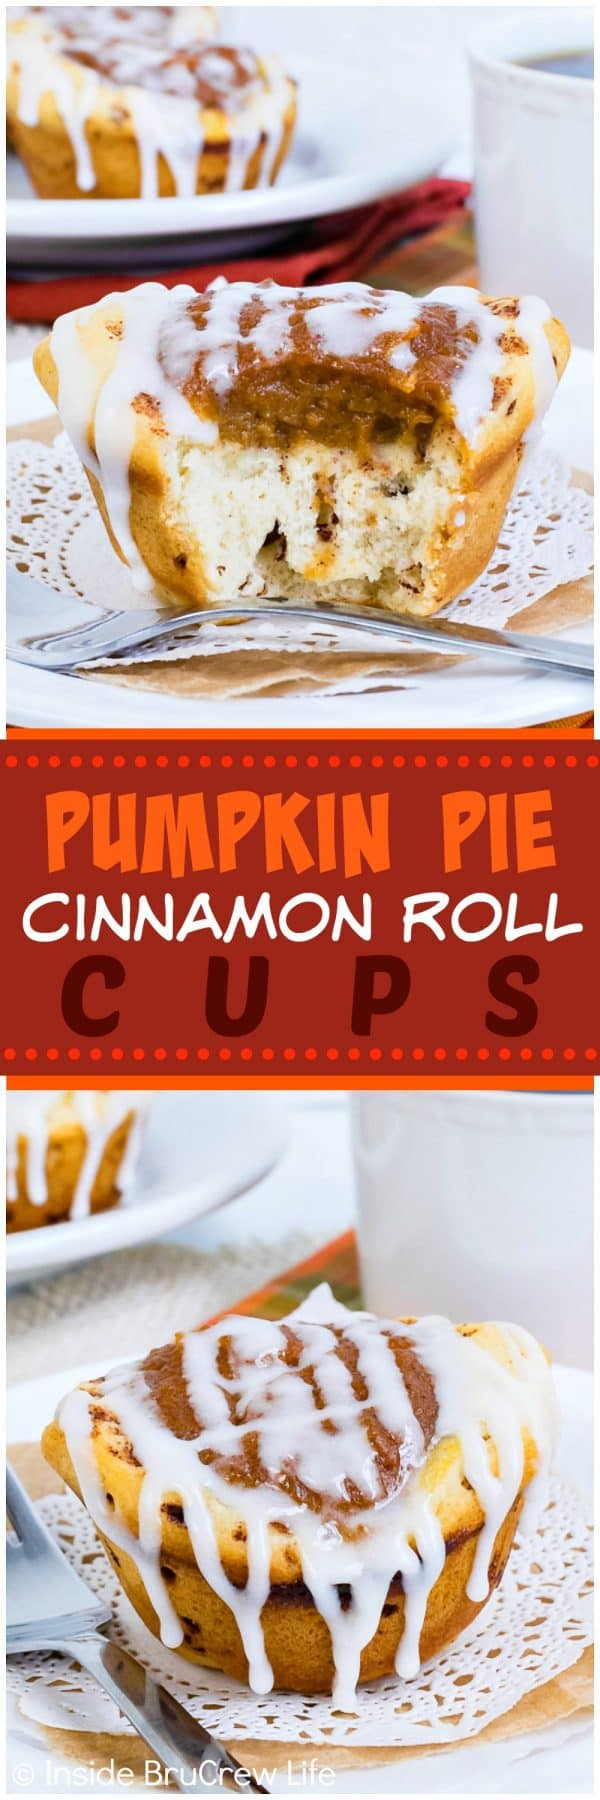 Pumpkin Pie Cinnamon Roll Cups - a sweet pumpkin pie center makes these little cinnamon rolls the perfect breakfast treat. Easy recipe for fall.